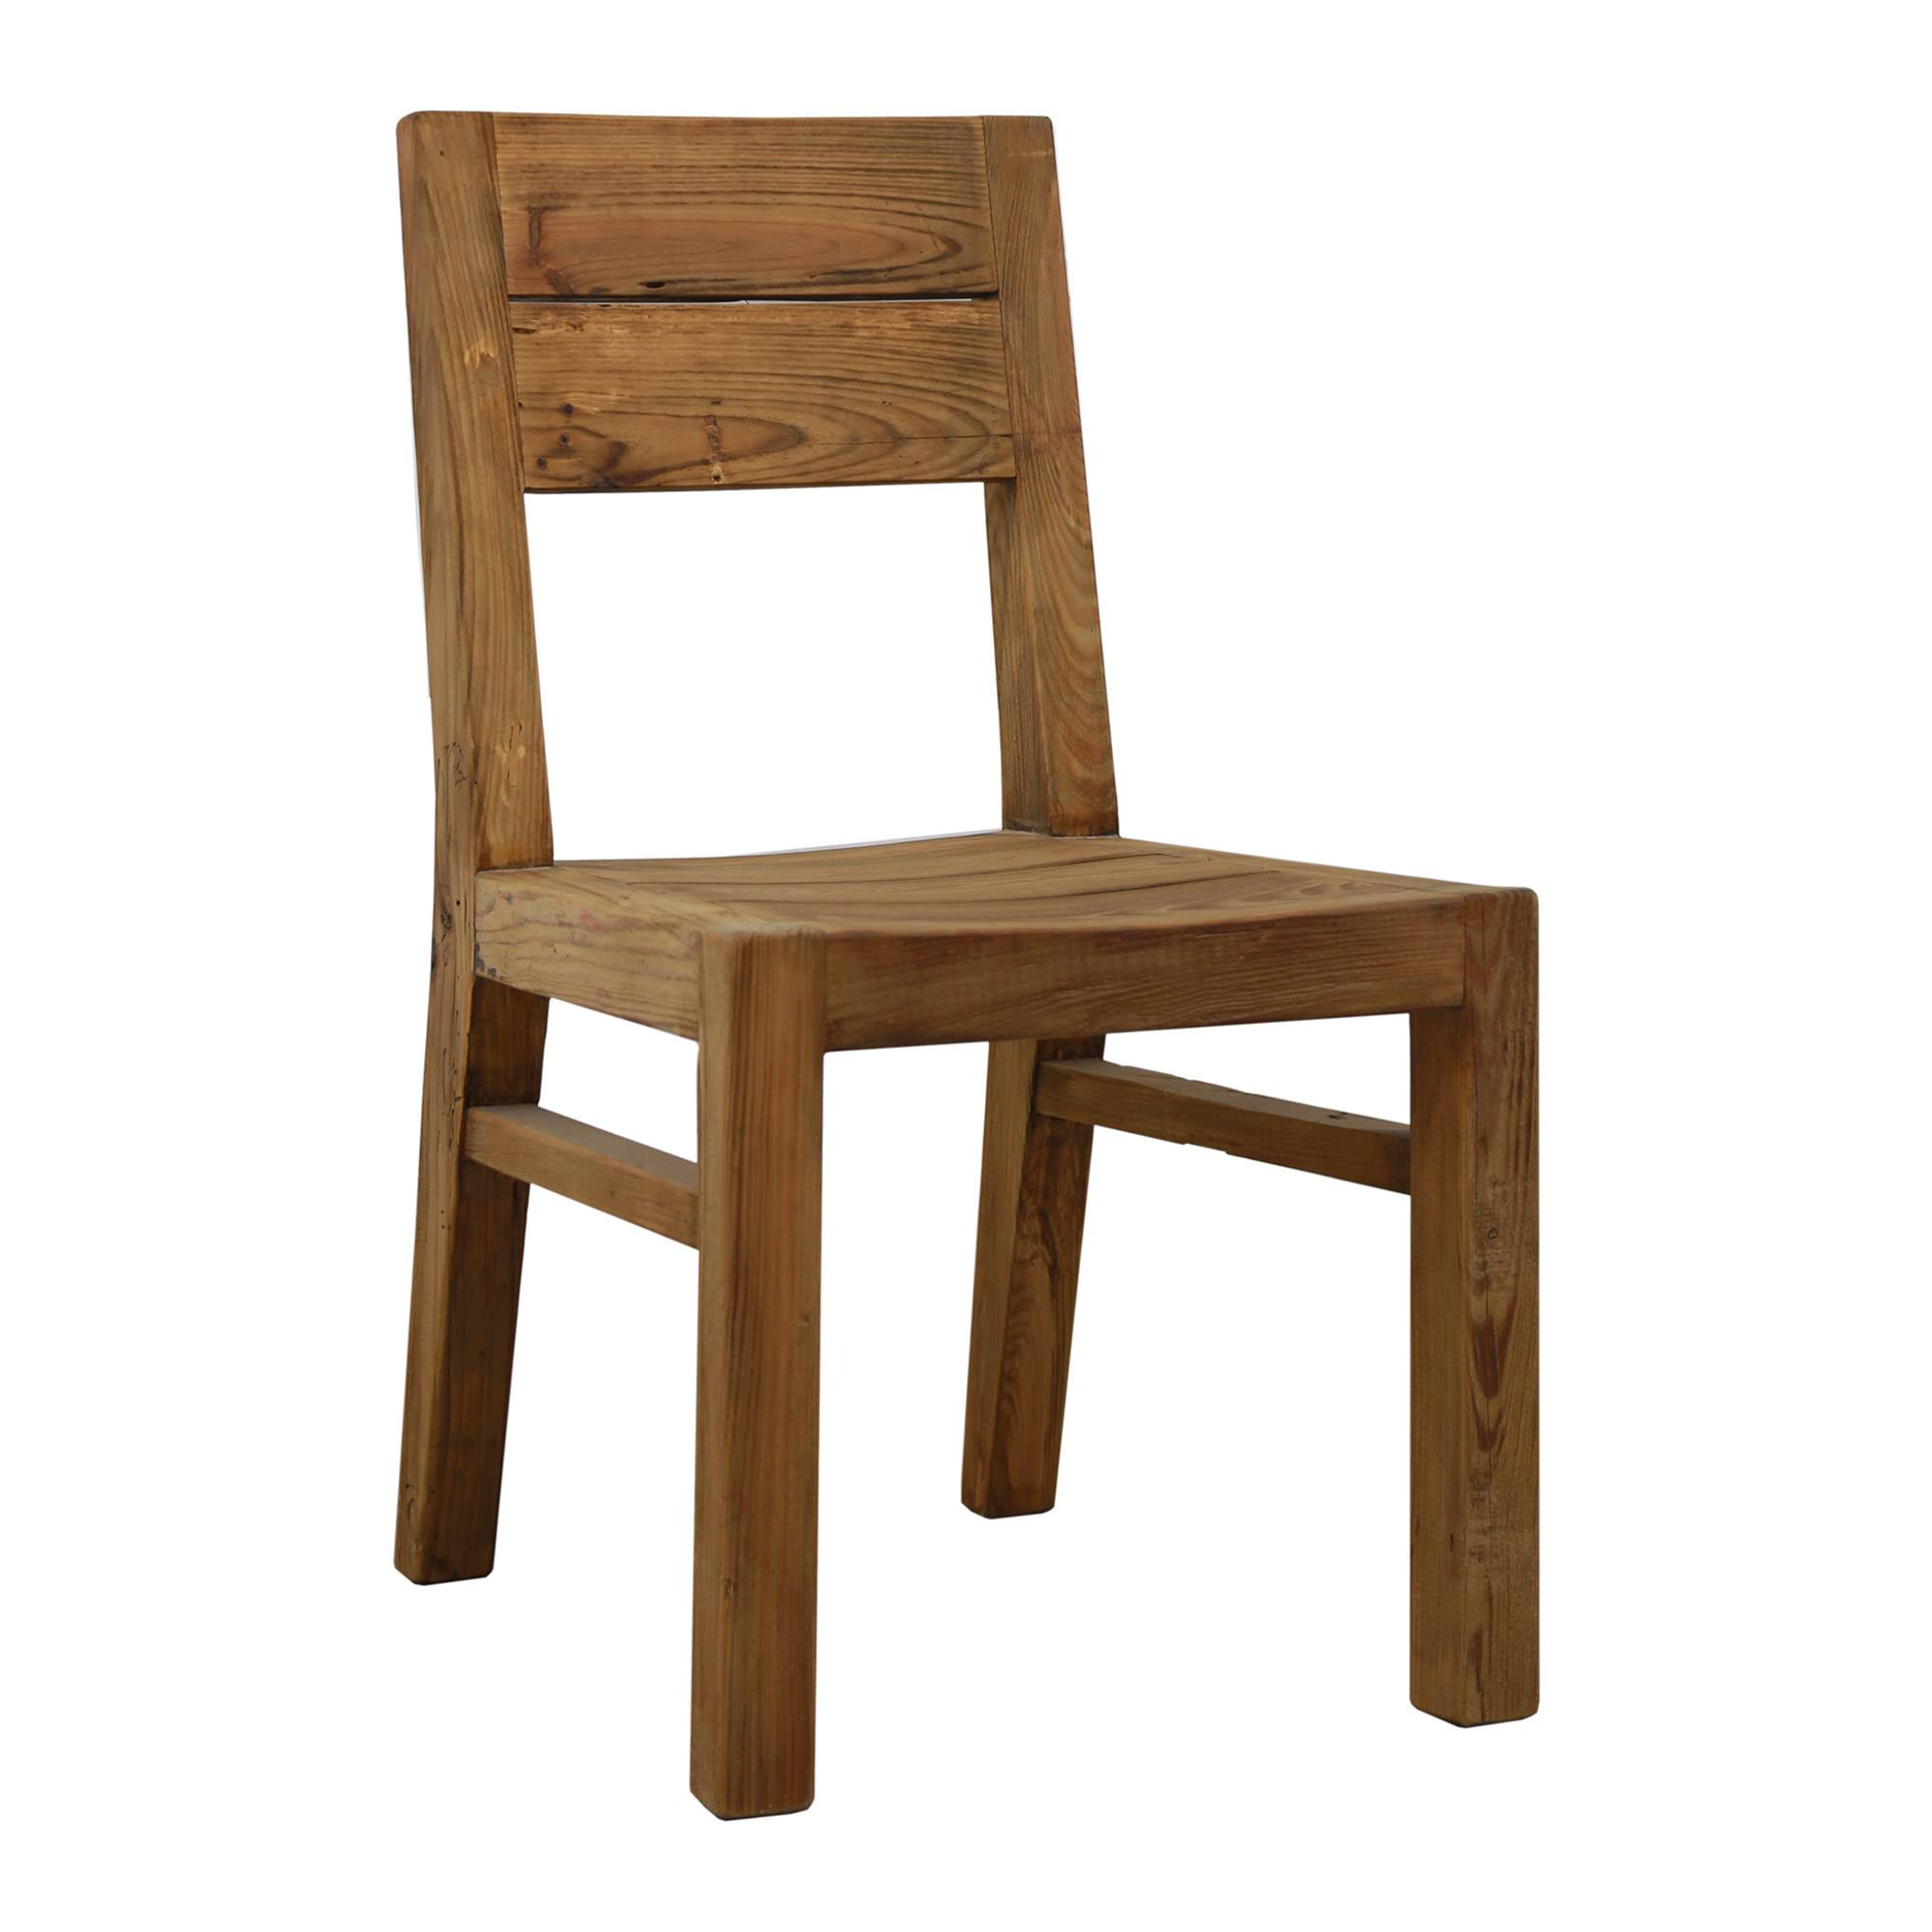 Mandalay Recycled Pine Timber Dining Chair